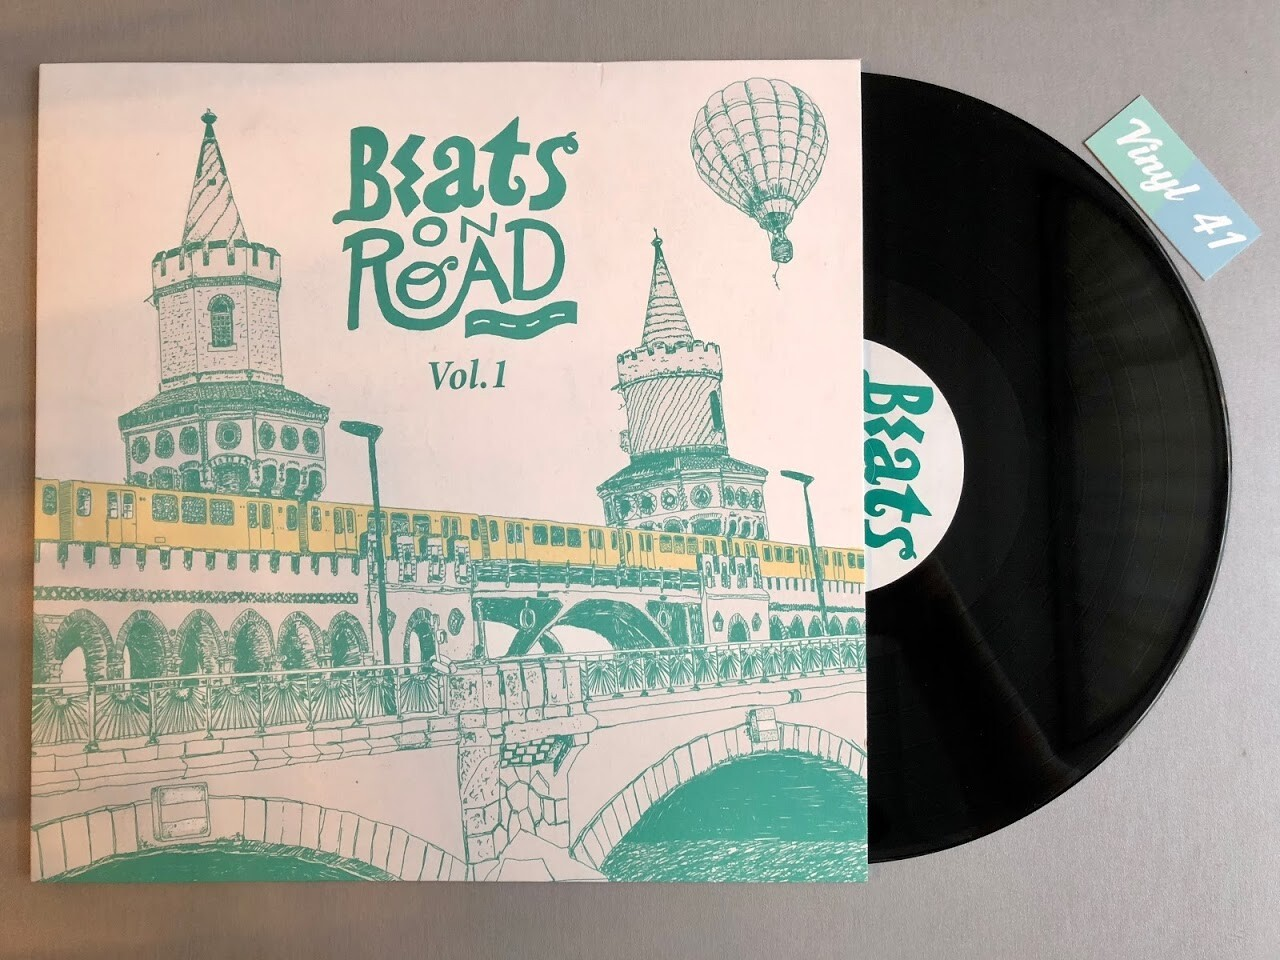 Beats On Road Vol. 1